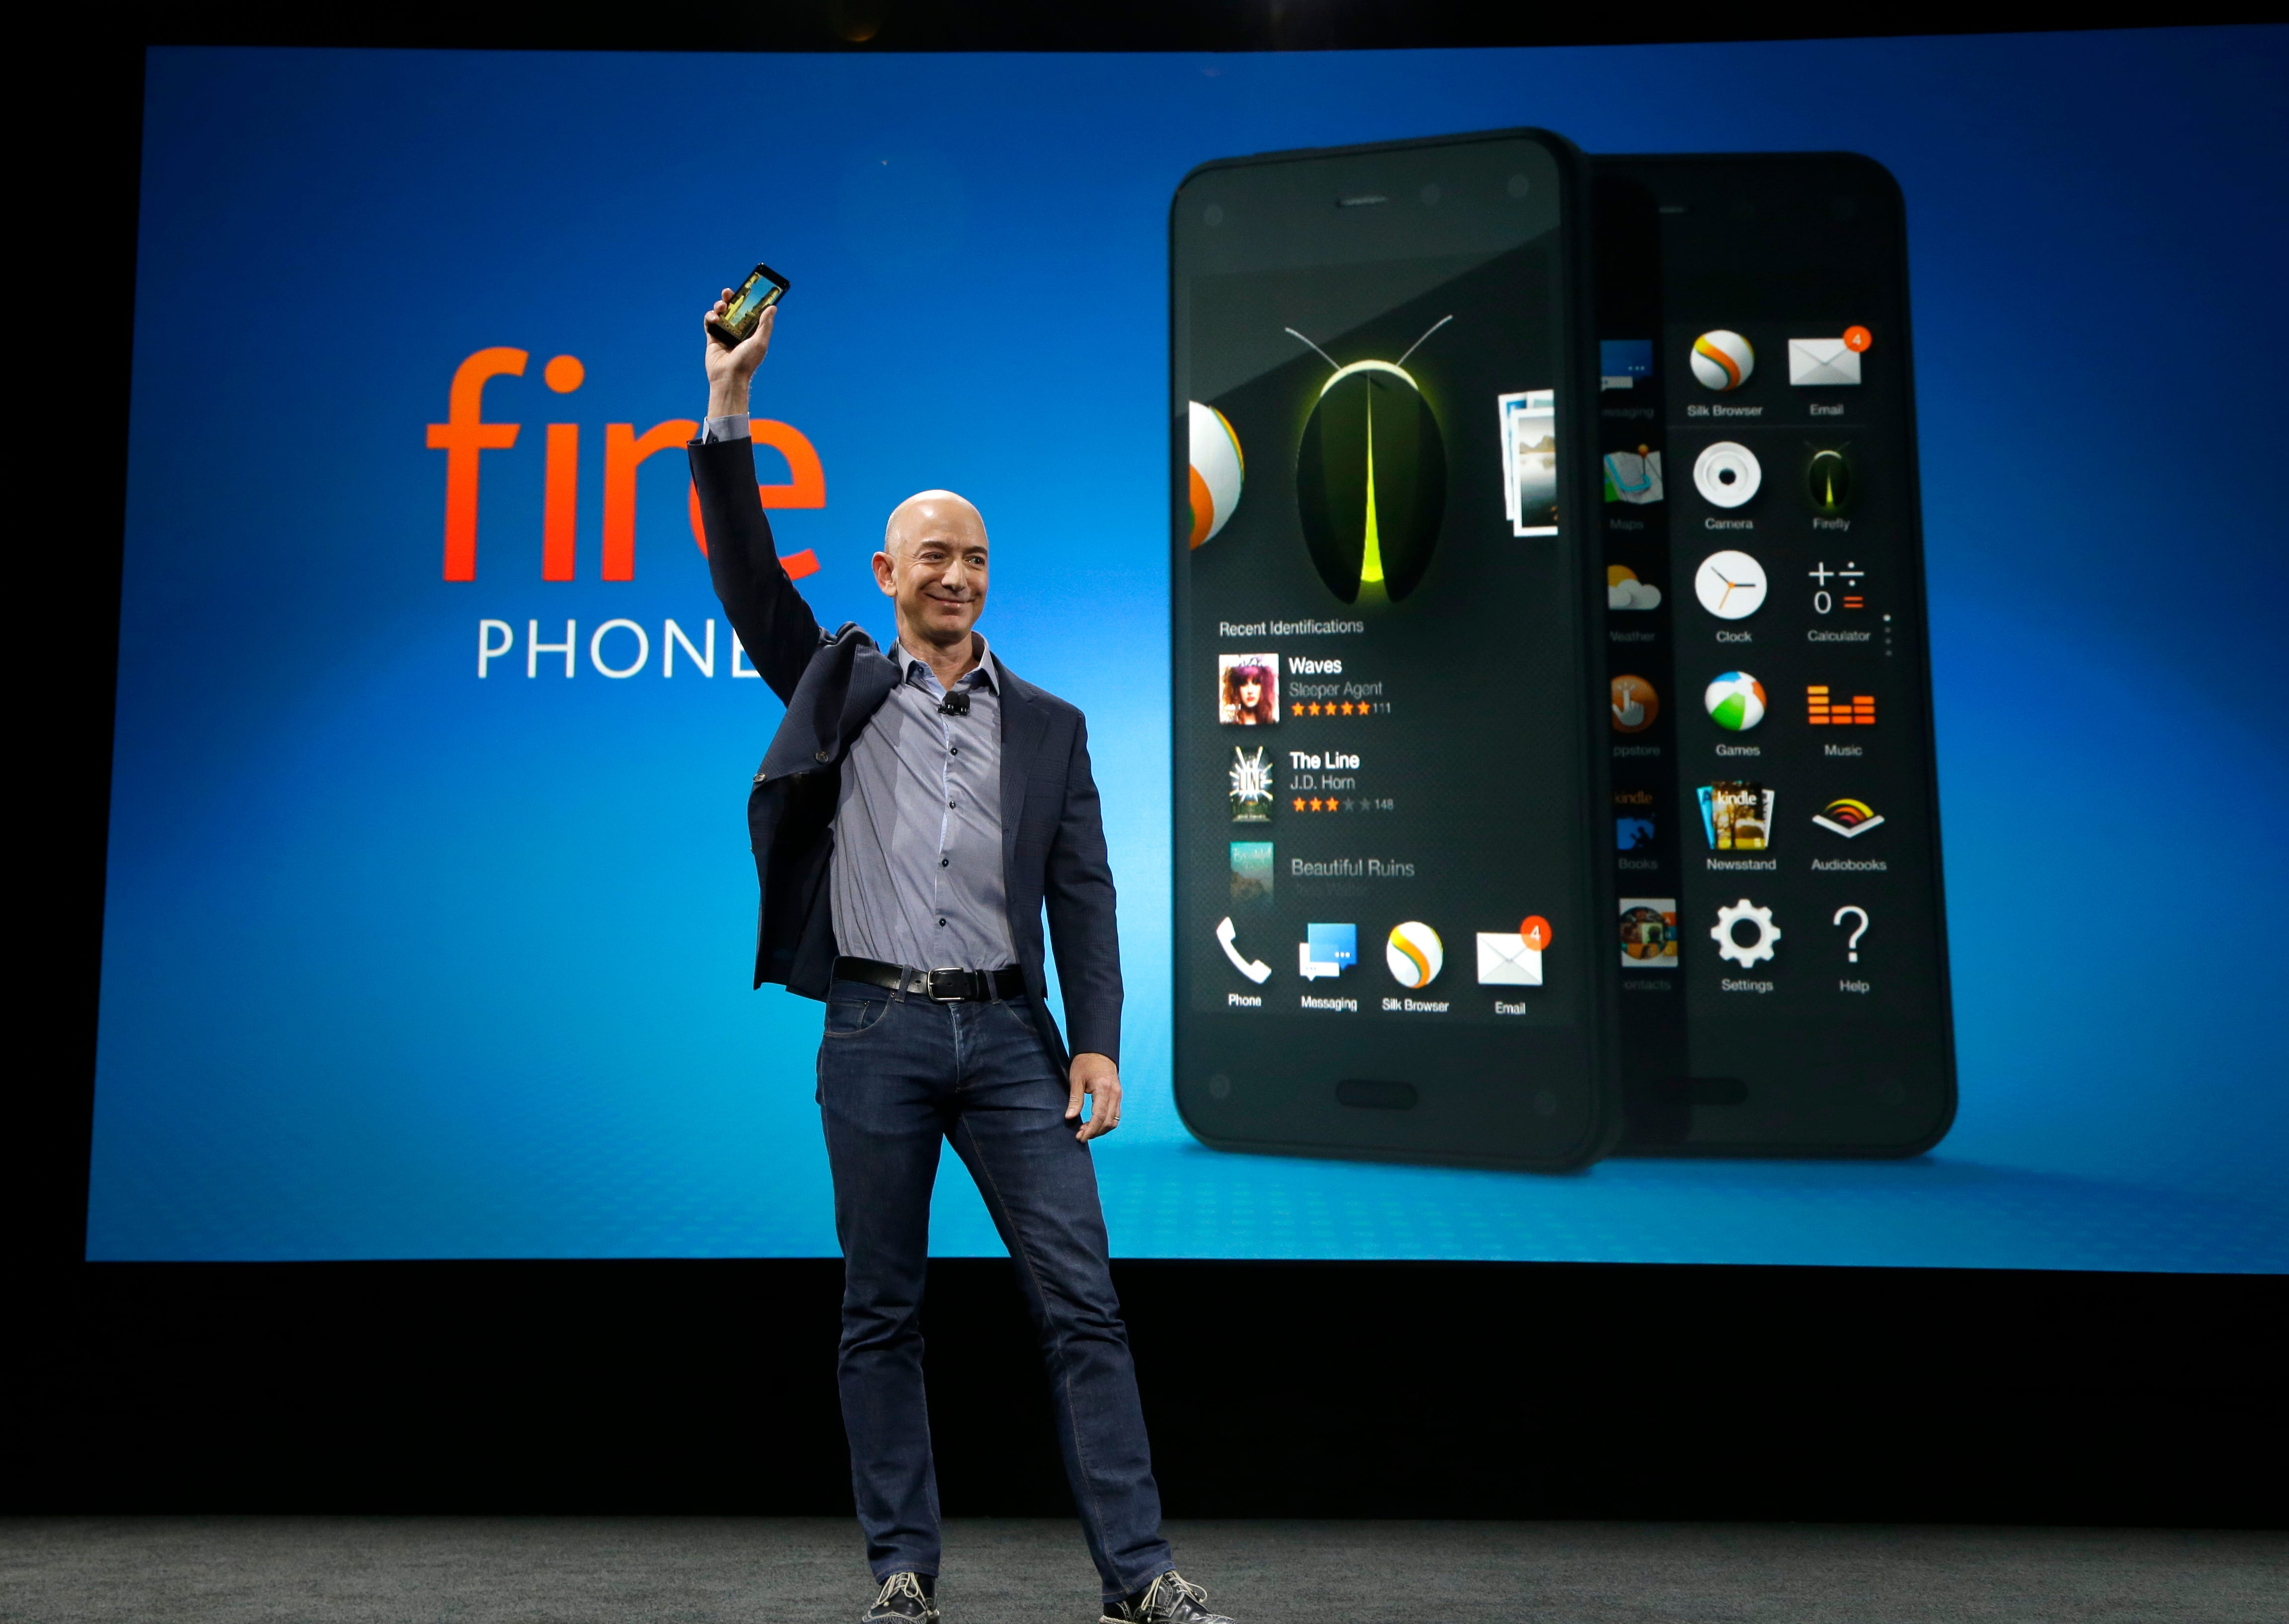 Jeff Bezos and those texts: How to keep what you text private